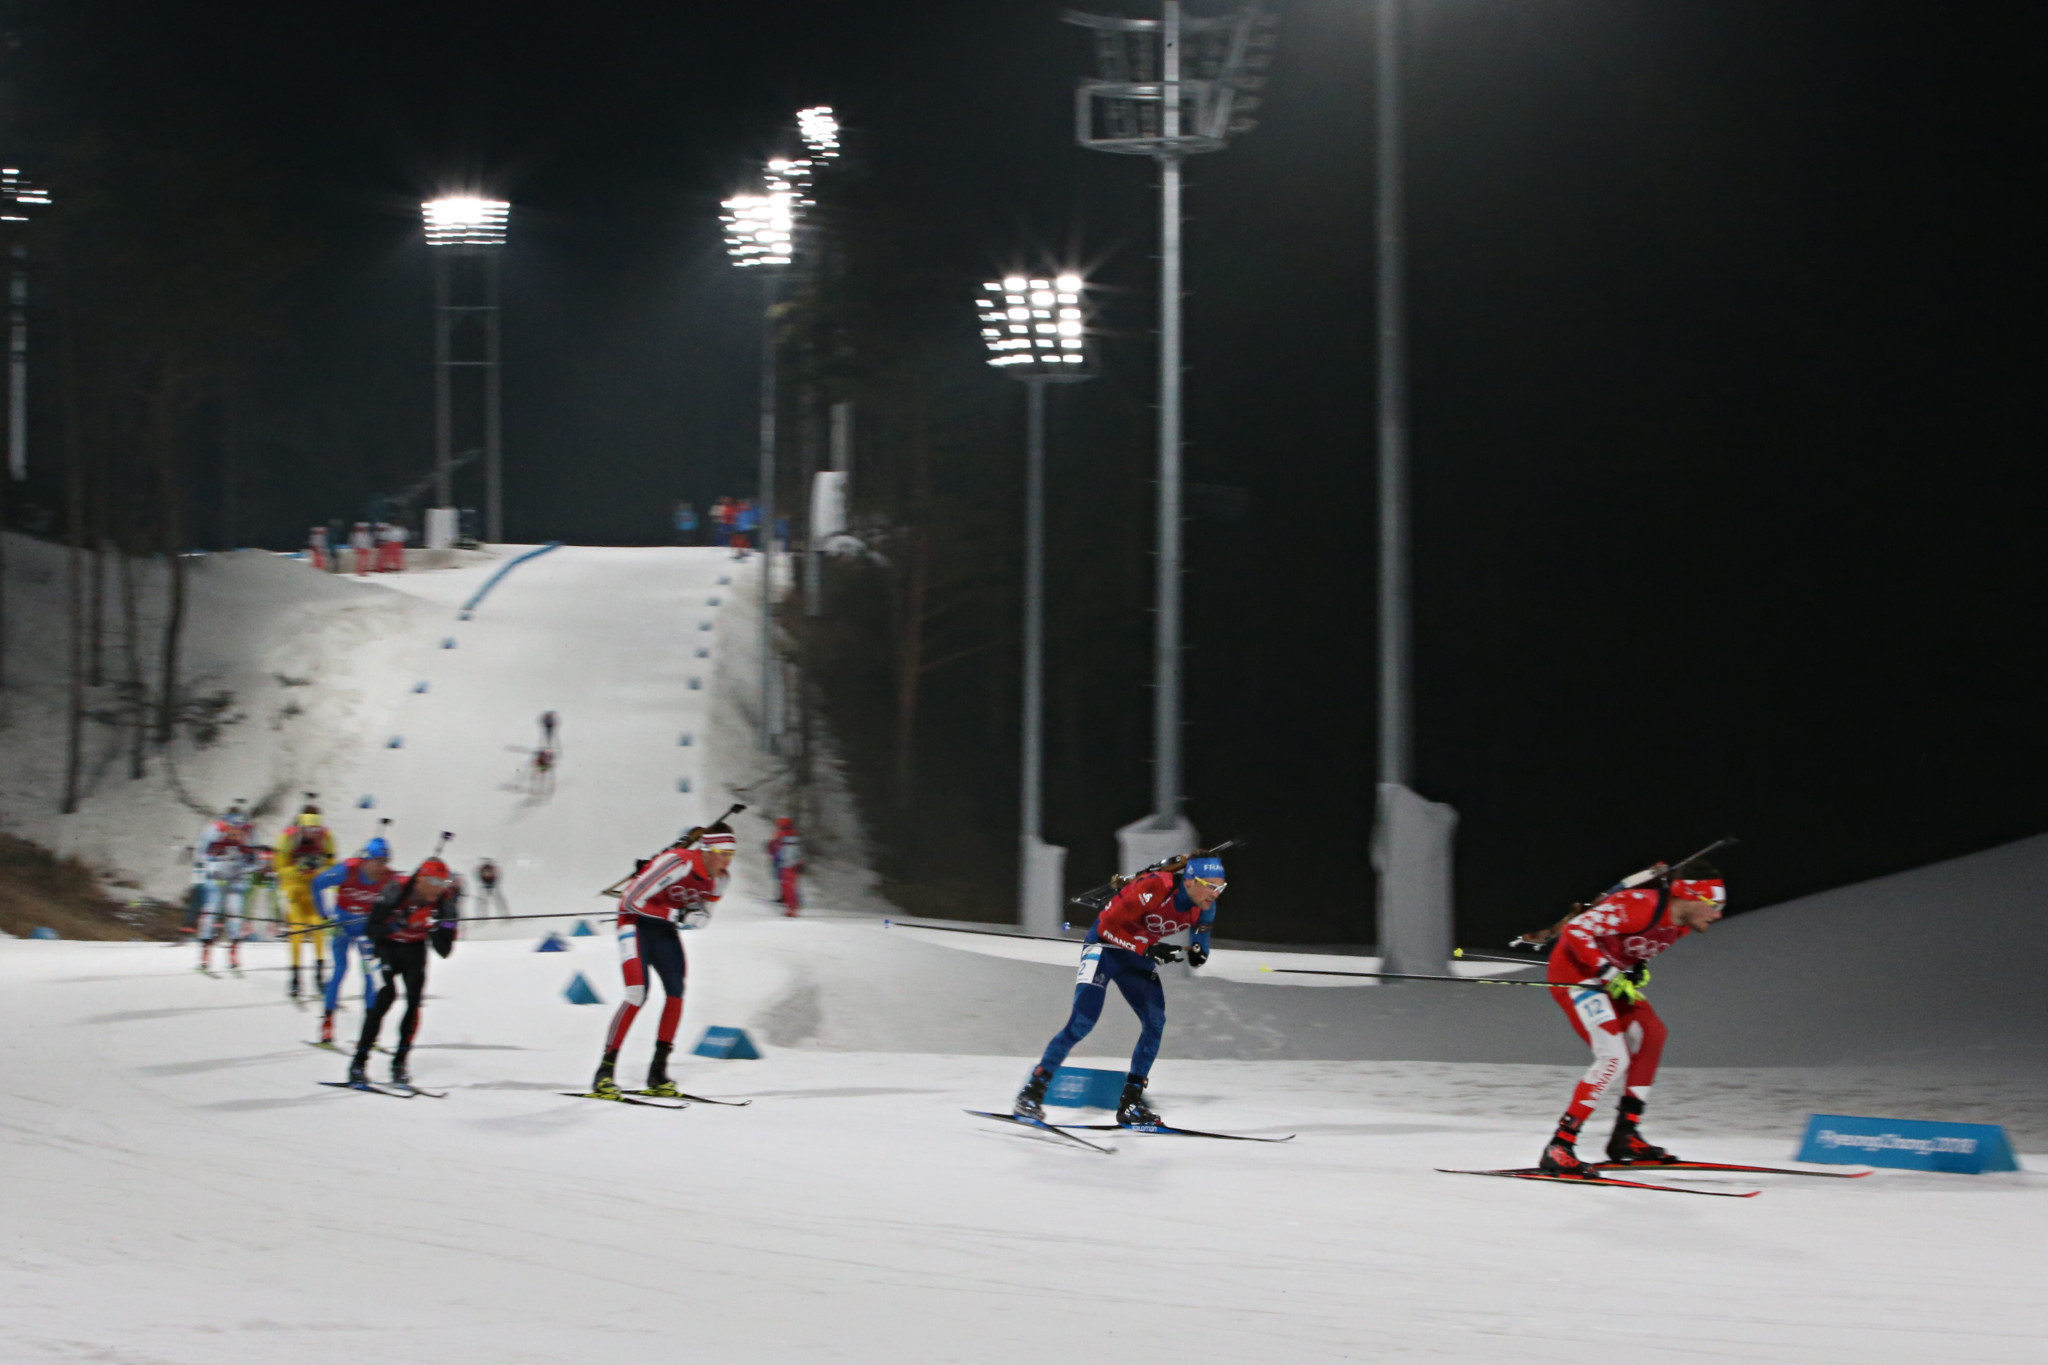 insidethegames is reporting LIVE from the Winter Olympics in Pyeongchang